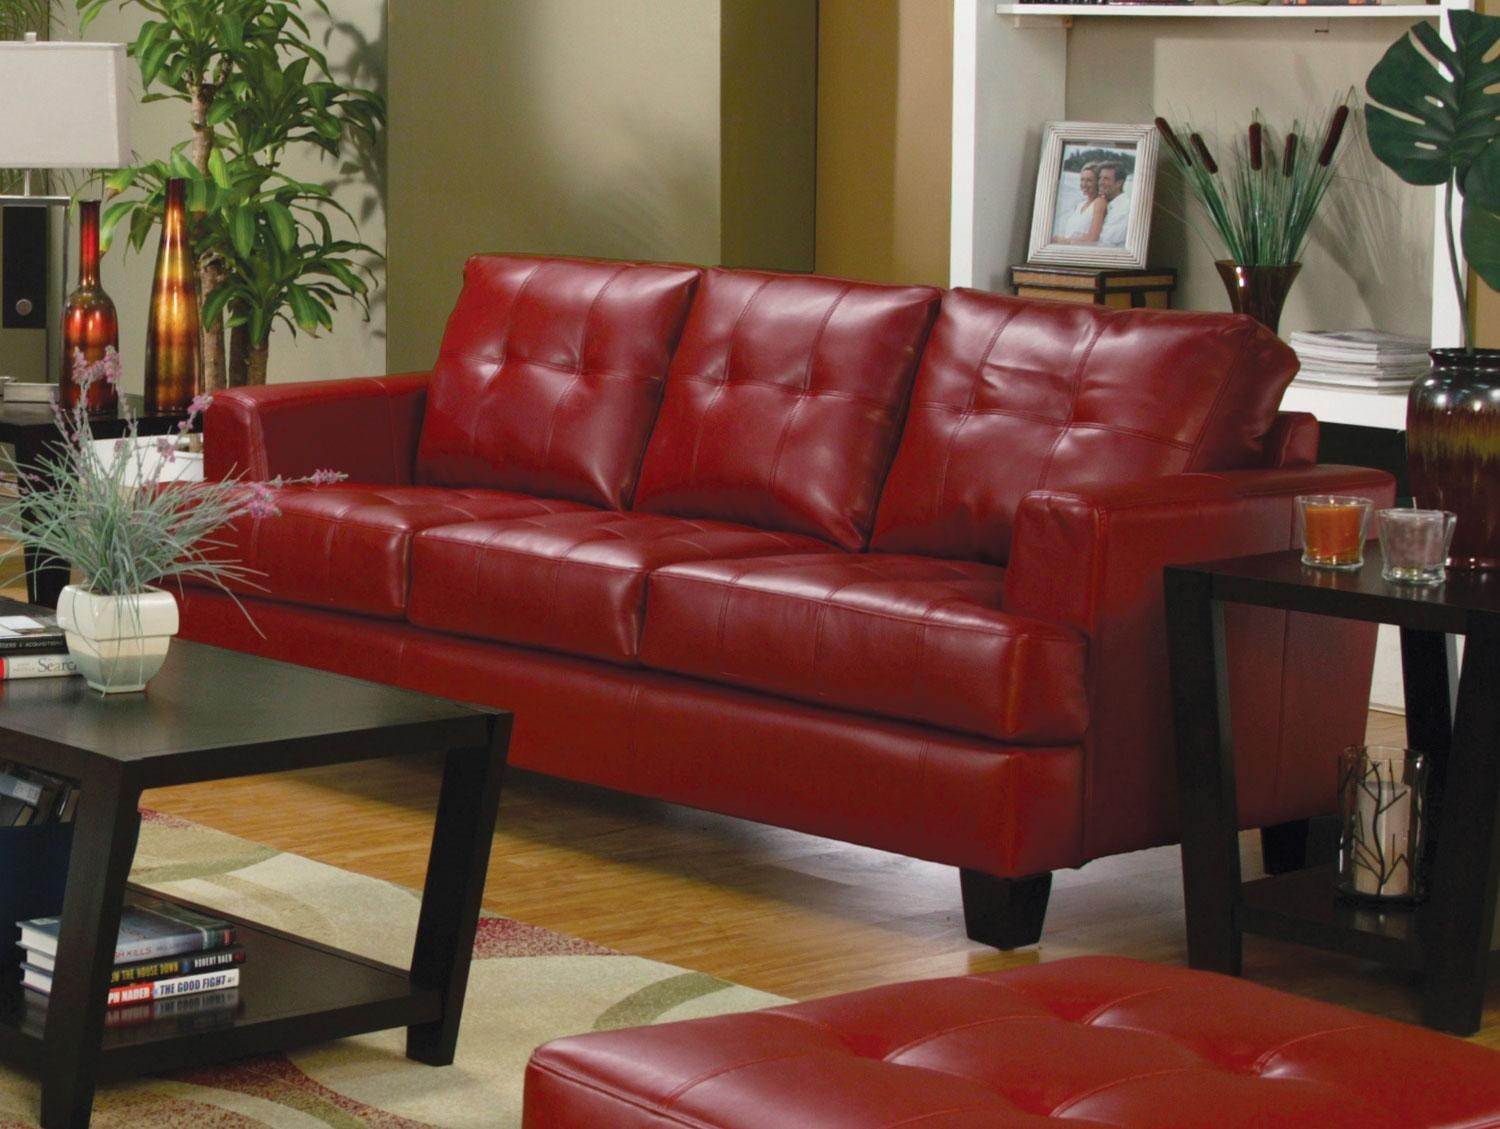 Samuel Red Leather Sofa 501831 From Coaster 501831